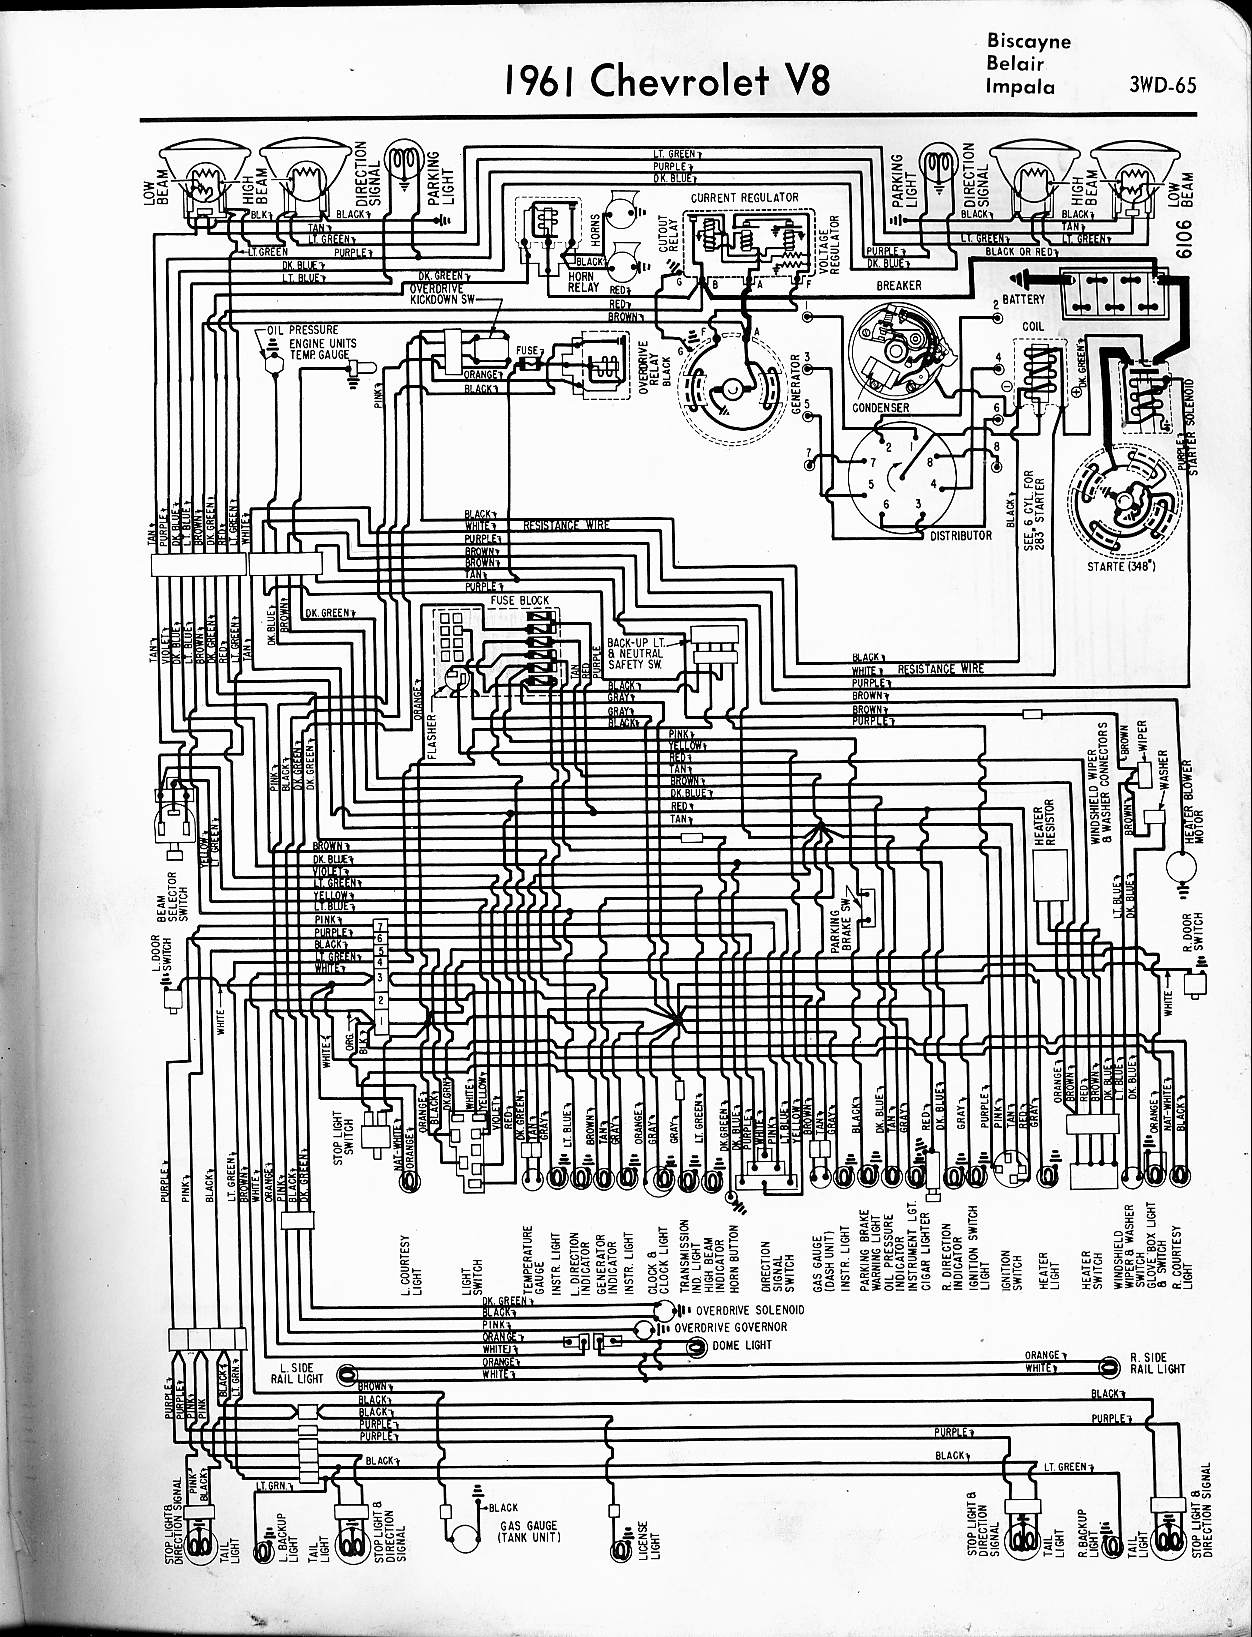 1965 Impala Engine Wiring Diagram Start Building A 66 C10 Diagrams 57 65 Chevy Rh Oldcarmanualproject Com 2008